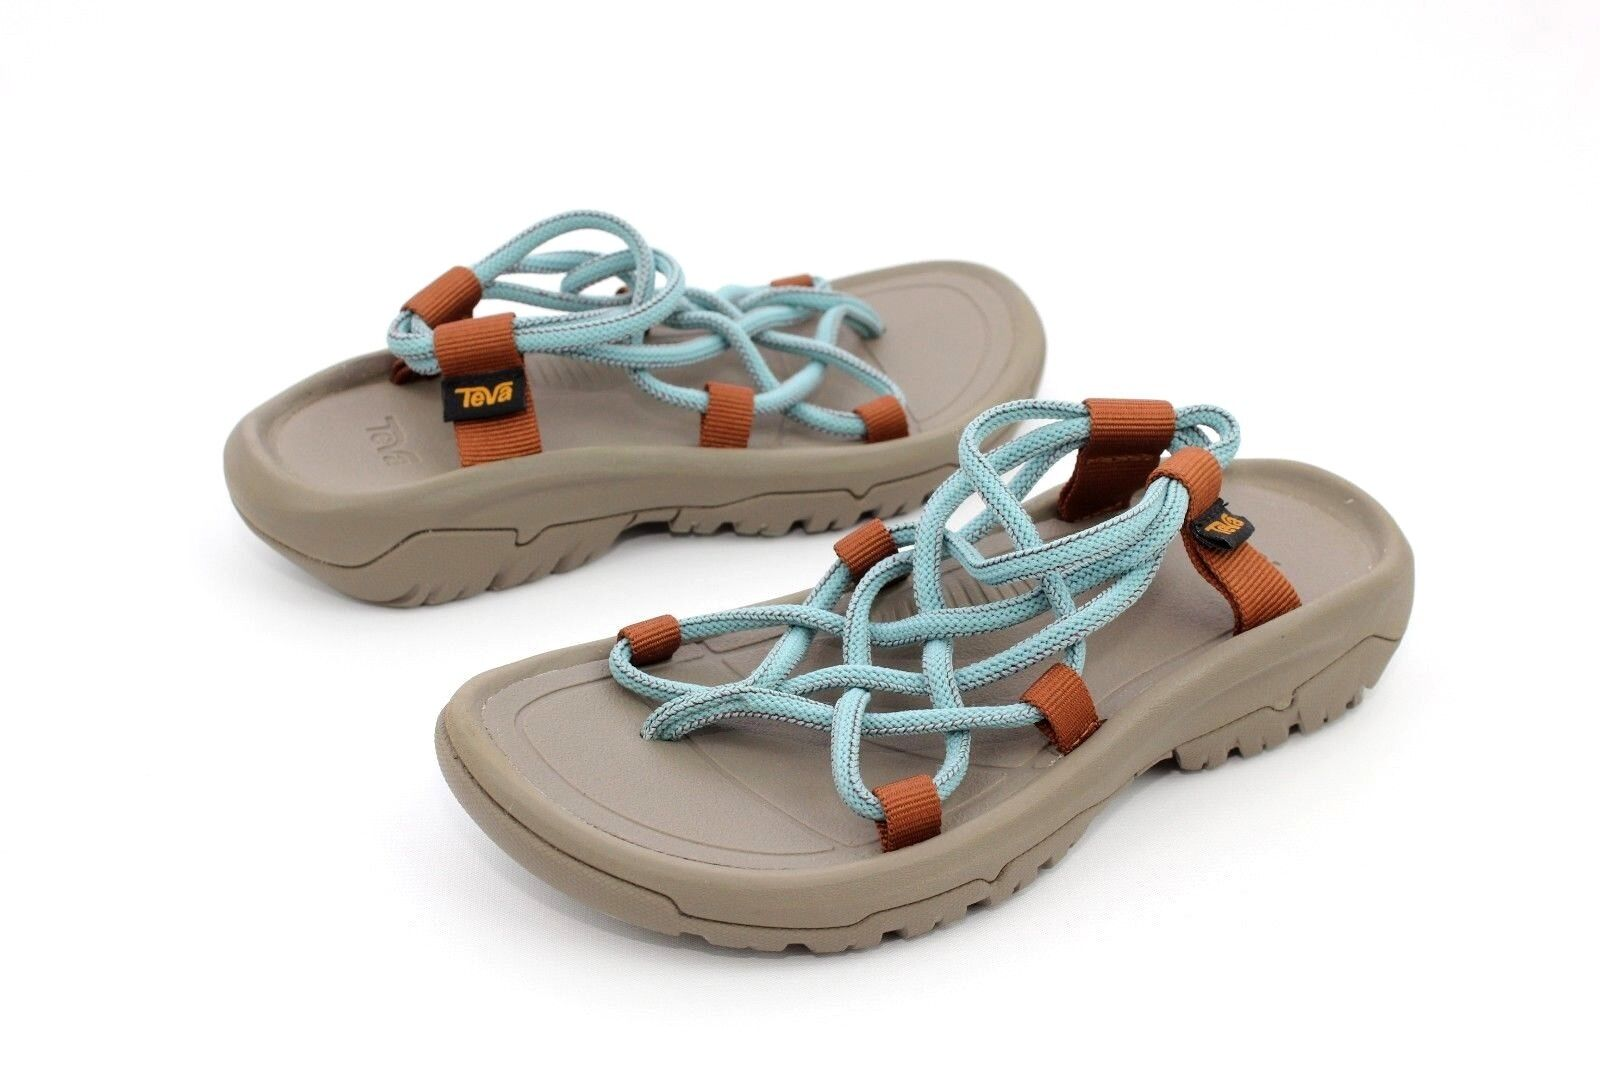 TEVA HURRICANE XLT INFINITY SEA GLASS SPORT SANDALS US 7 WOMENS